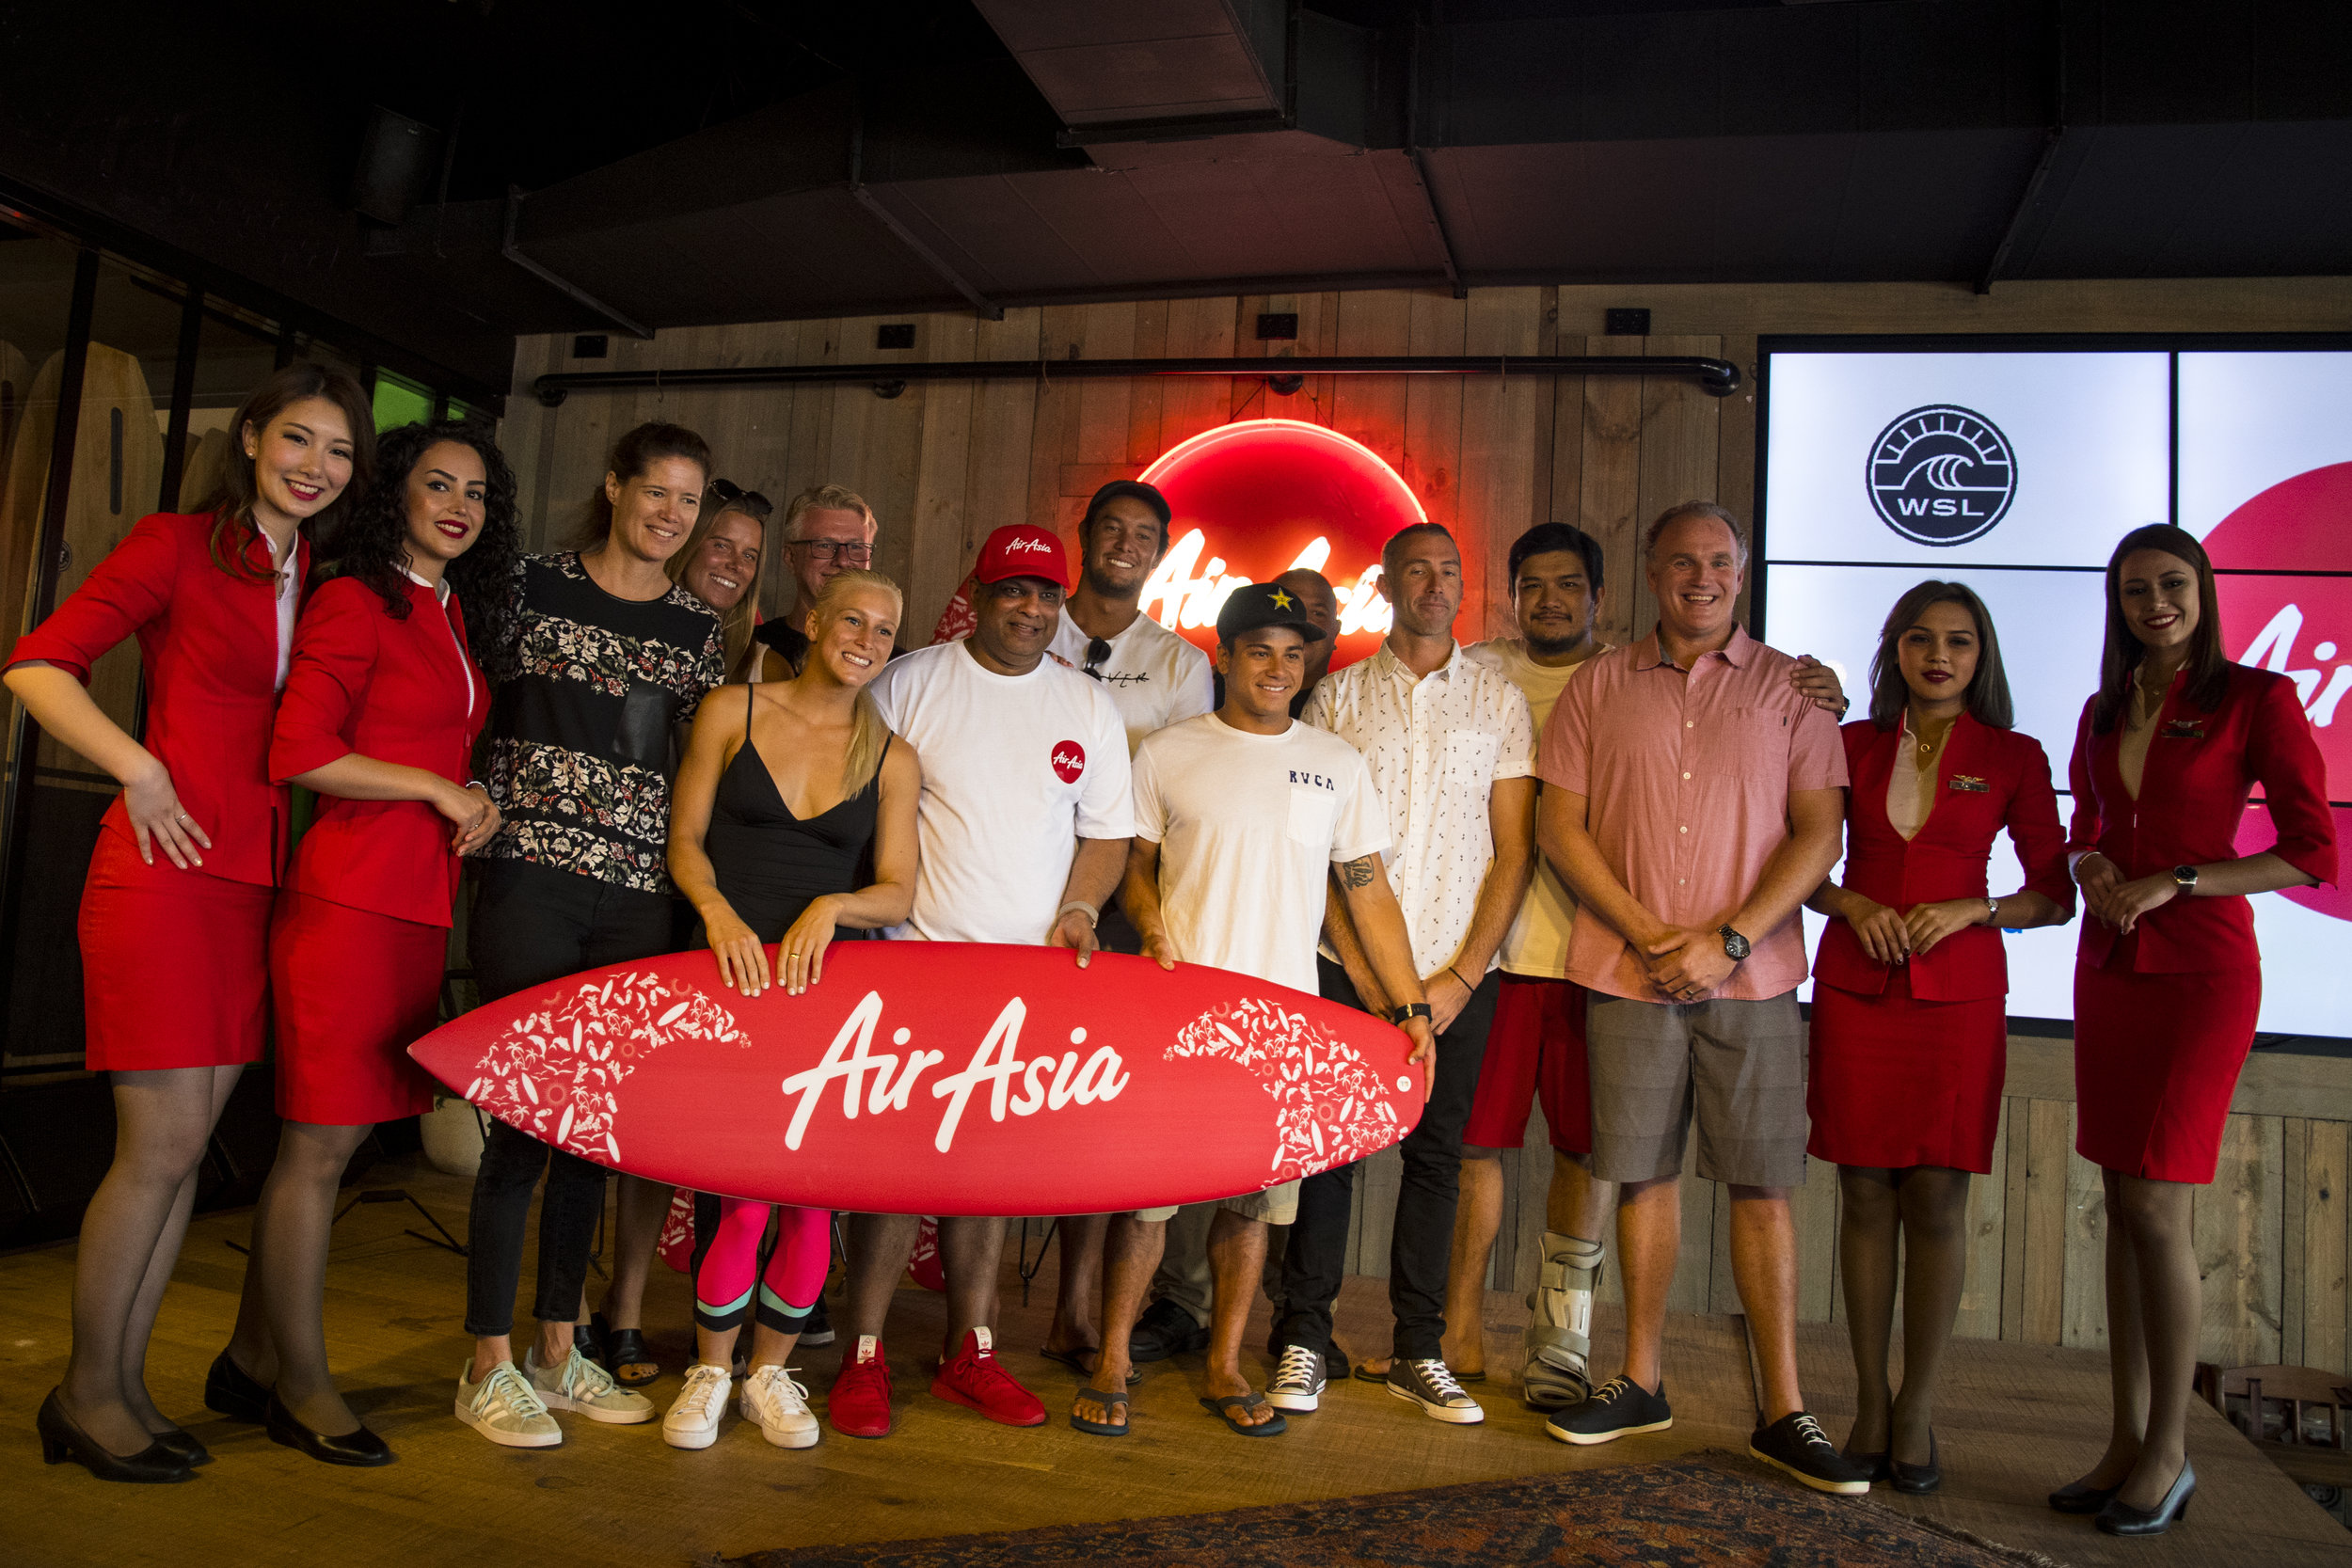 AirAsiaSurfPartnership_180318Smith4654.jpg